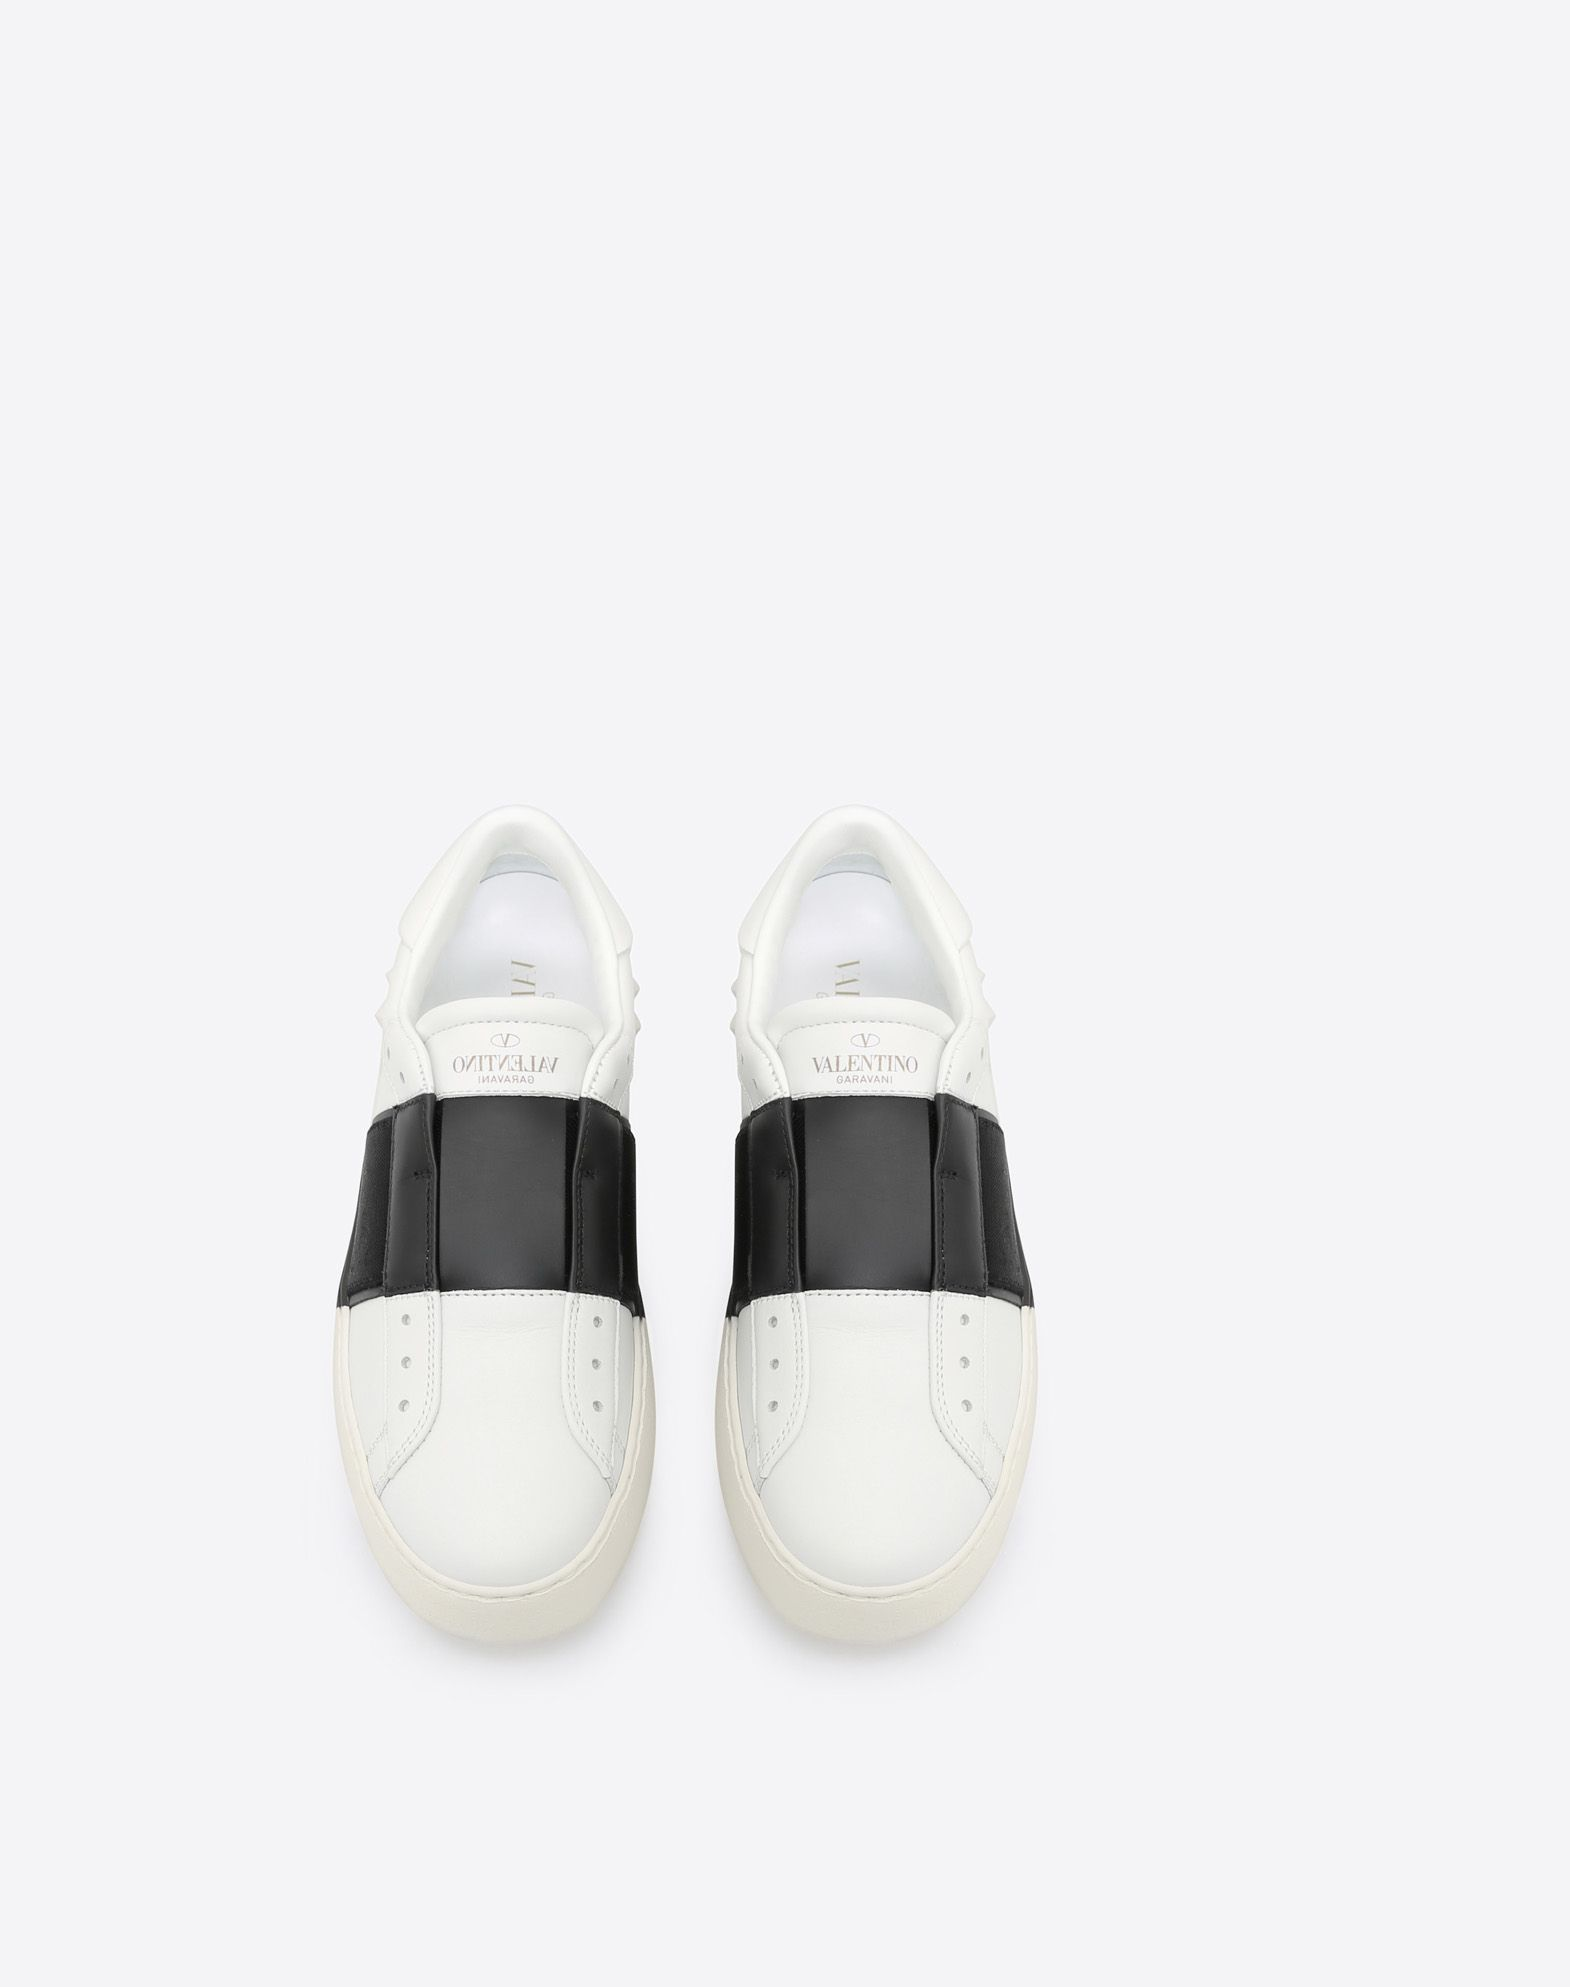 VALENTINO Two-tone Visible logo  Round toeline Rubber sole  45366845ik